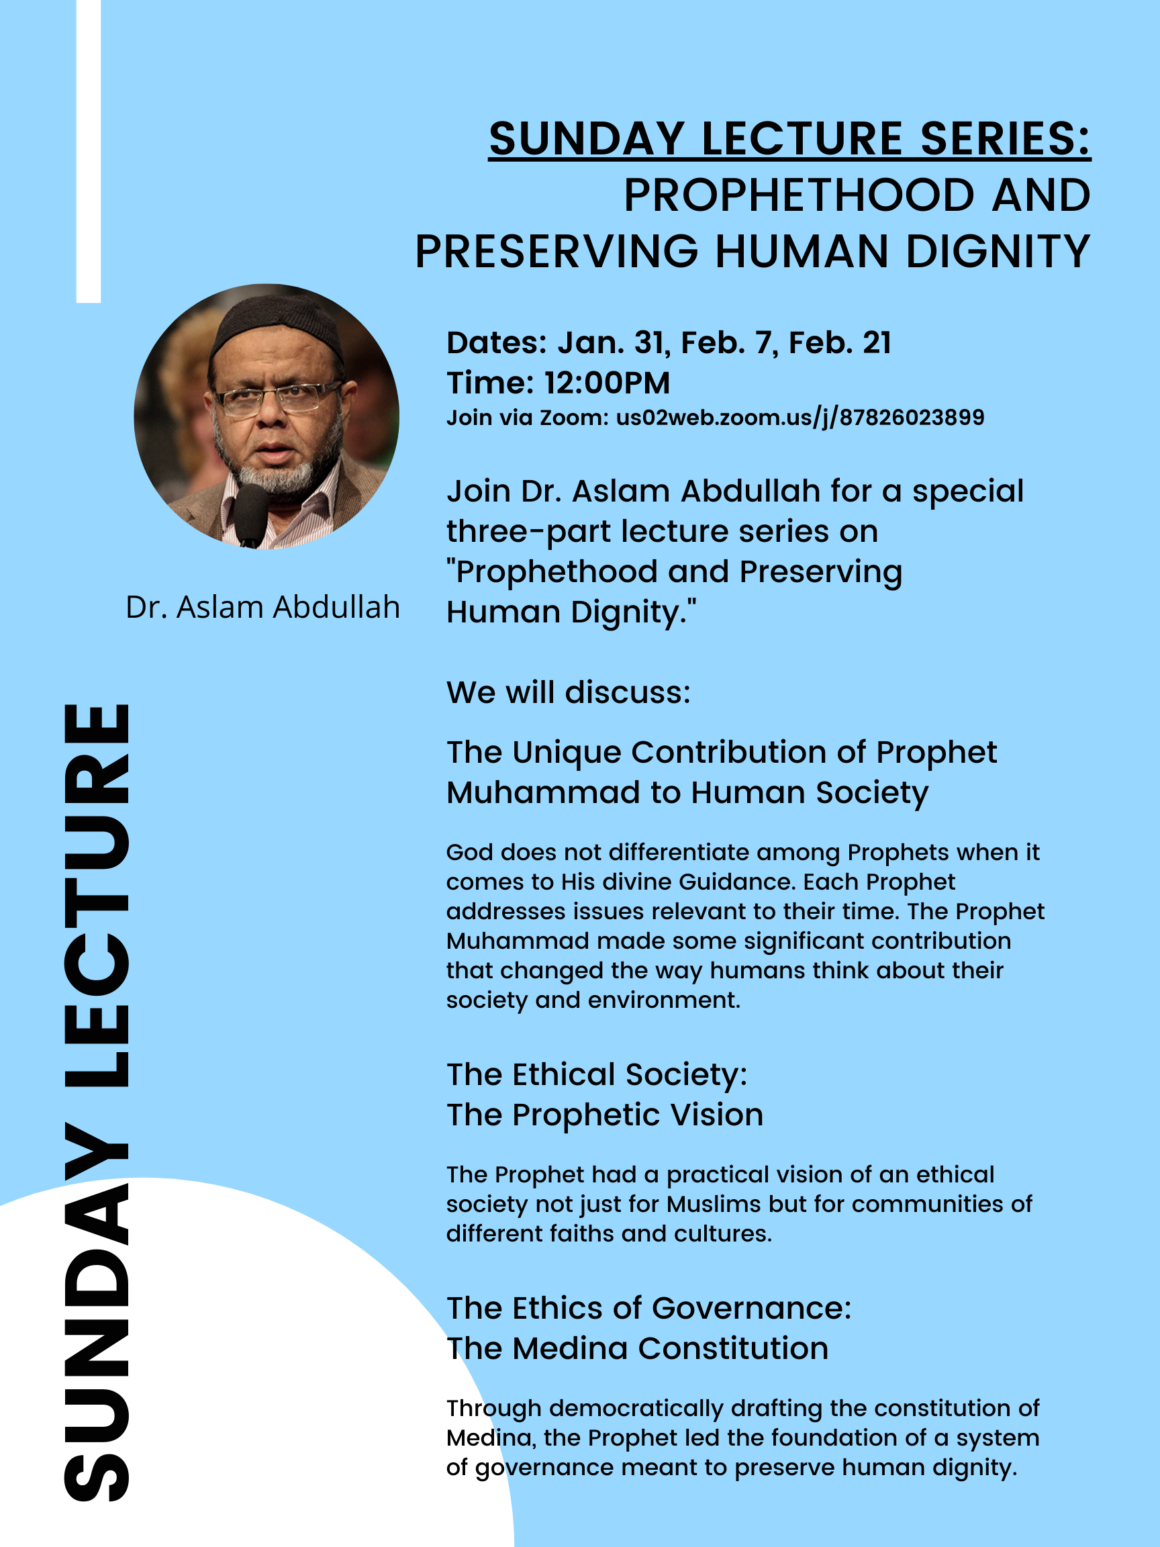 Sunday Lecture Series: Prophethood and Preserving Human Dignity